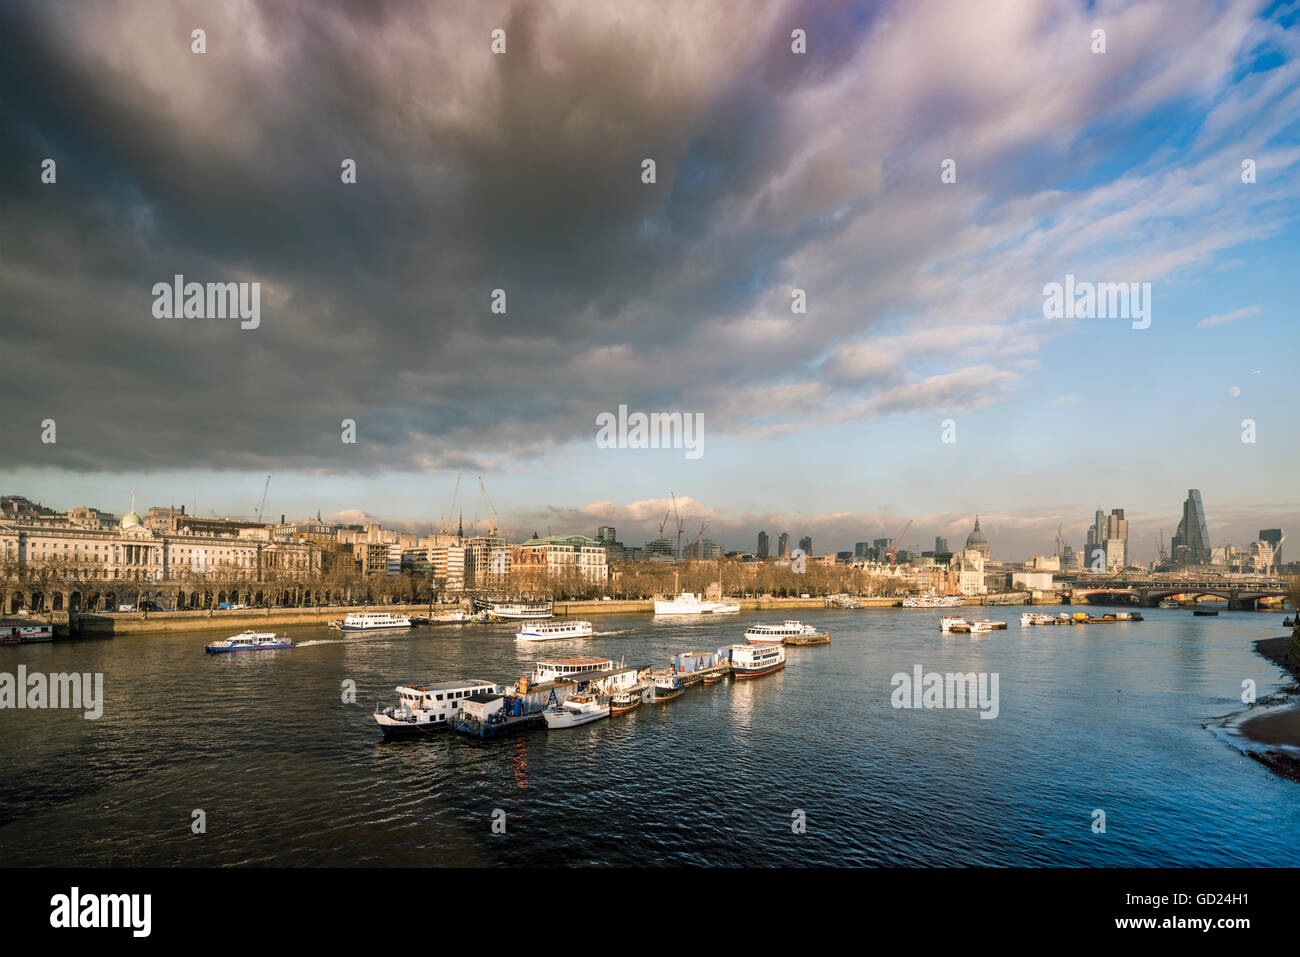 The River Thames looking North East from Waterloo Bridge, London, England, United Kingdom, Europe - Stock Image